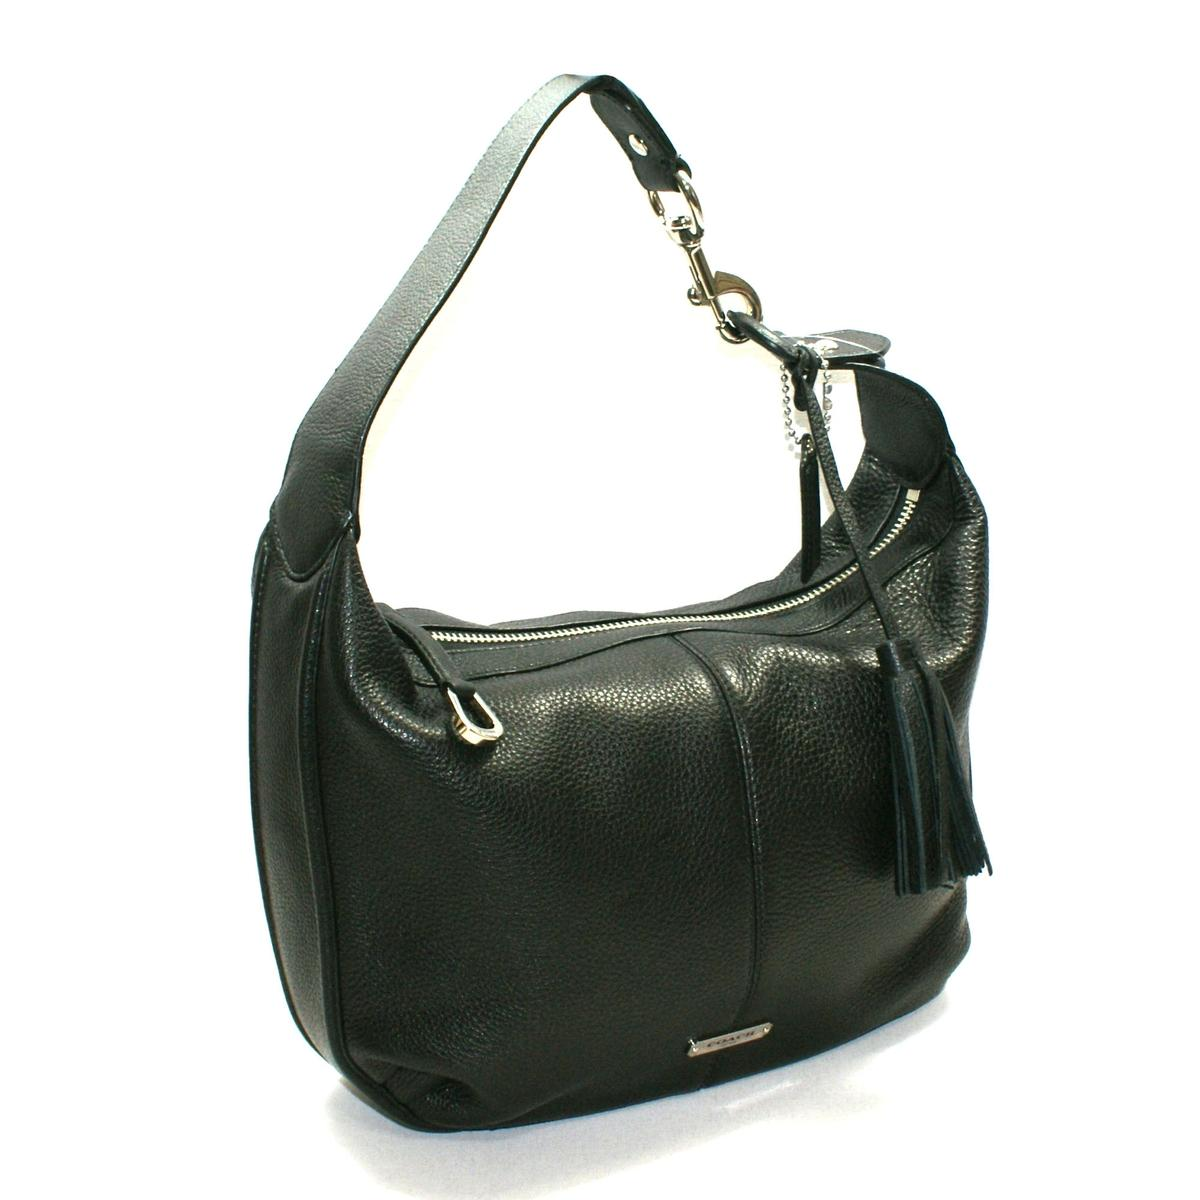 Find great deals on eBay for small leather handbag. Shop with confidence.